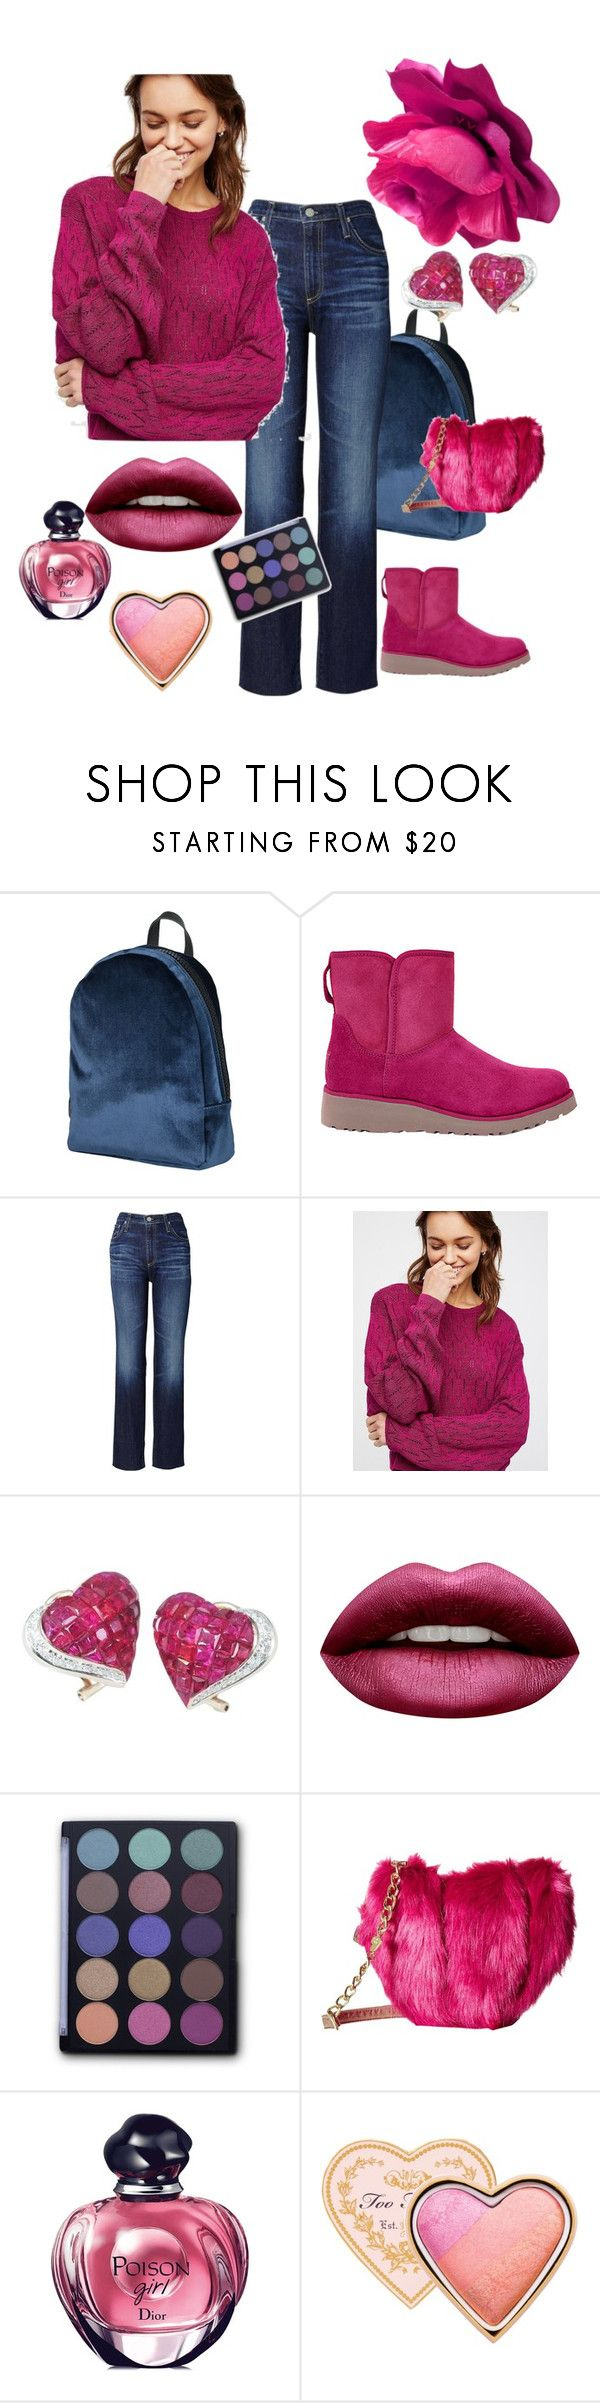 """""""Raspberry and Blues"""" by kindlefraud ❤ liked on Polyvore featuring George J. Love, UGG Australia, AG Adriano Goldschmied, Free People, La Fleur Jewels, Huda Beauty, FaceBase, Betsey Johnson, Christian Dior and Too Faced Cosmetics"""